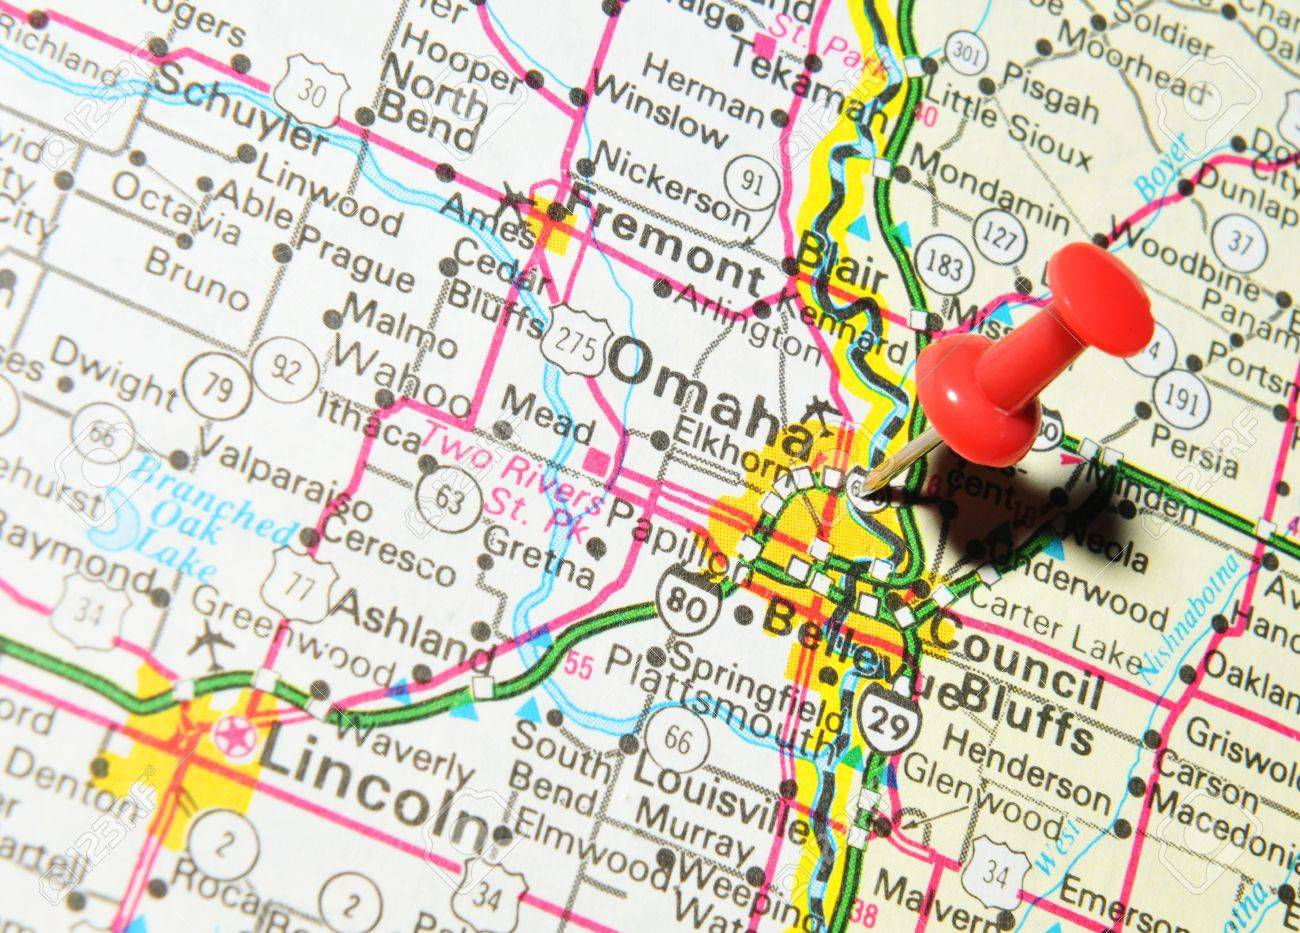 London UK June Omaha Nebraska Marked With Red - Where is omaha on the us map